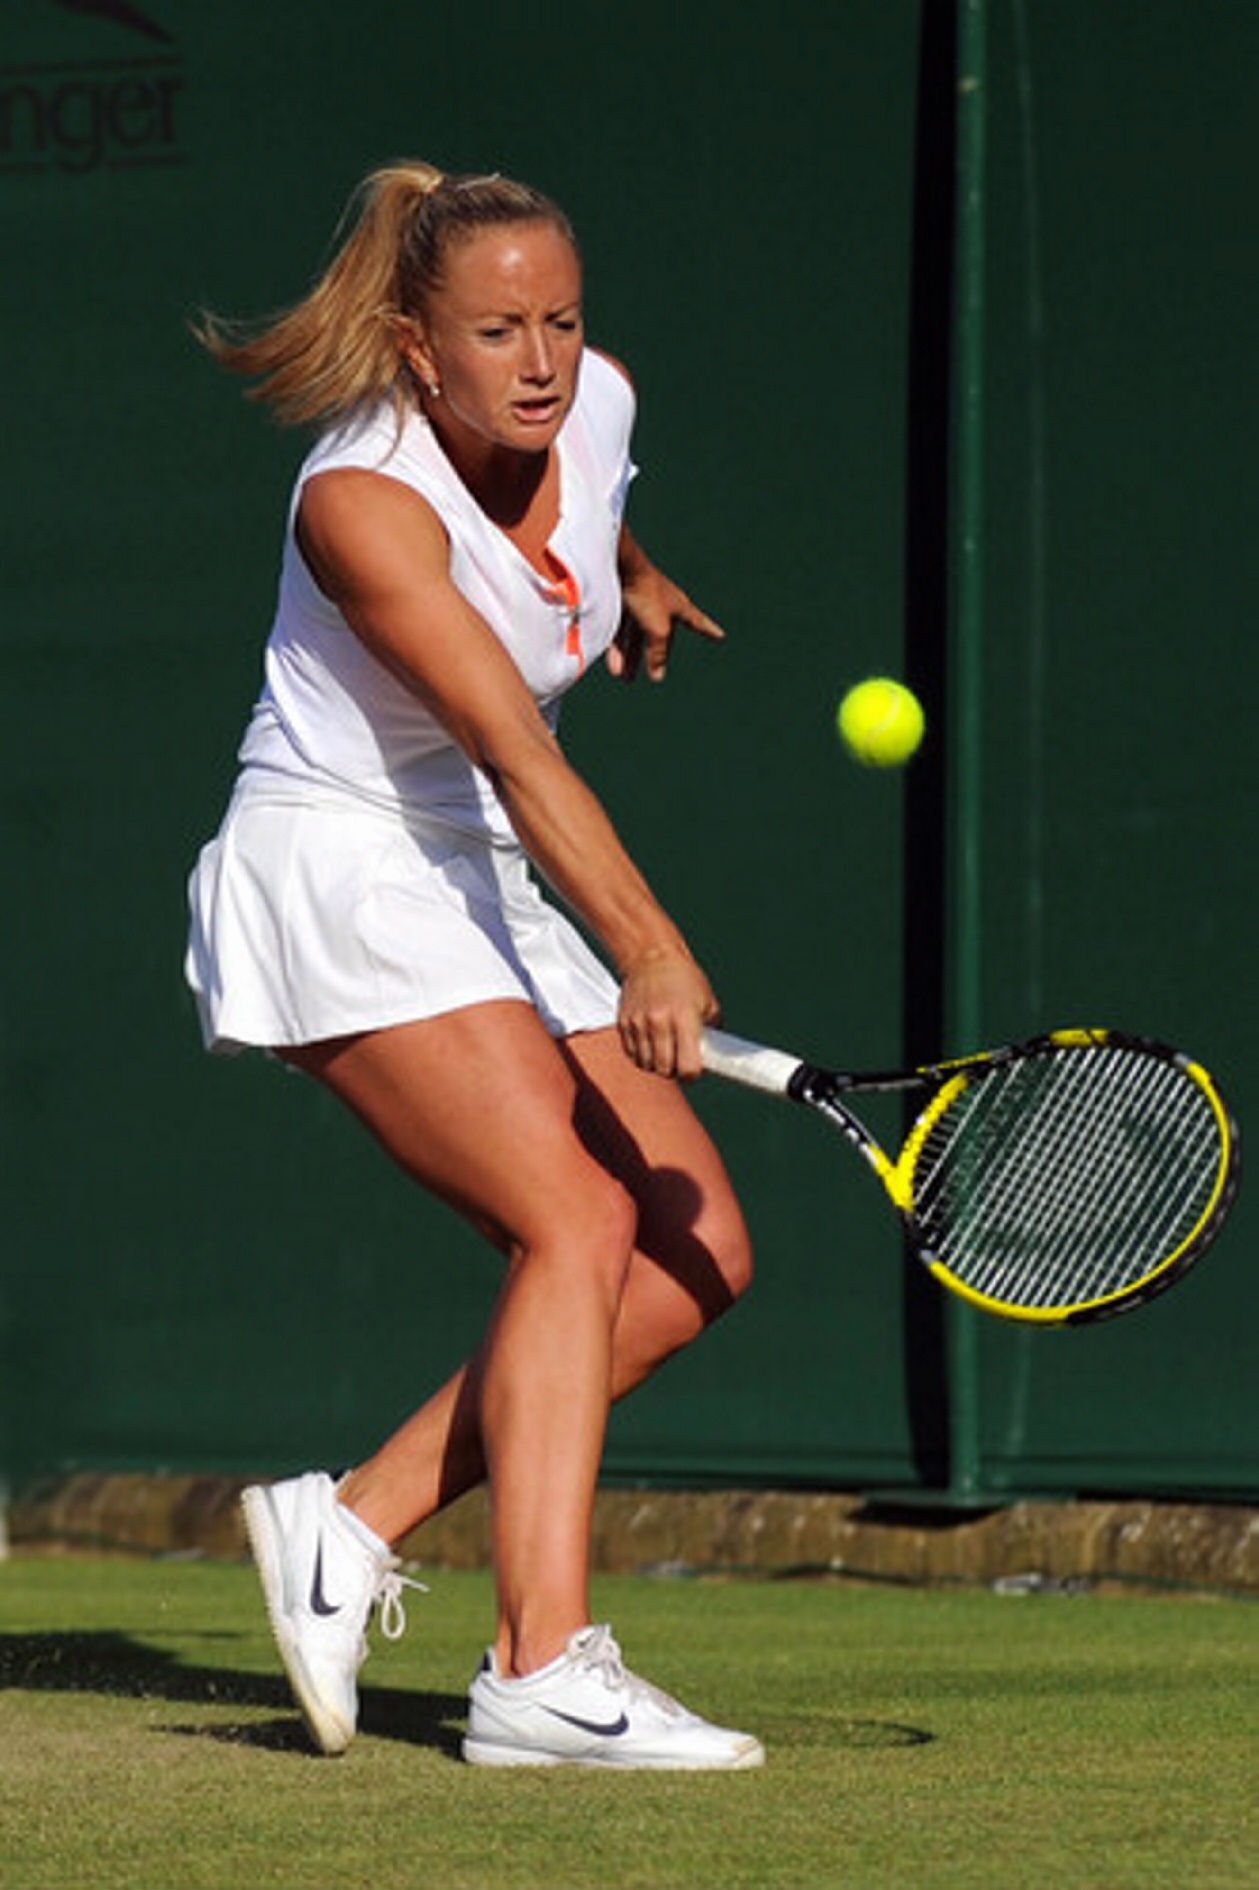 Emily Webley-Smith playing at Wimbledon in 2011